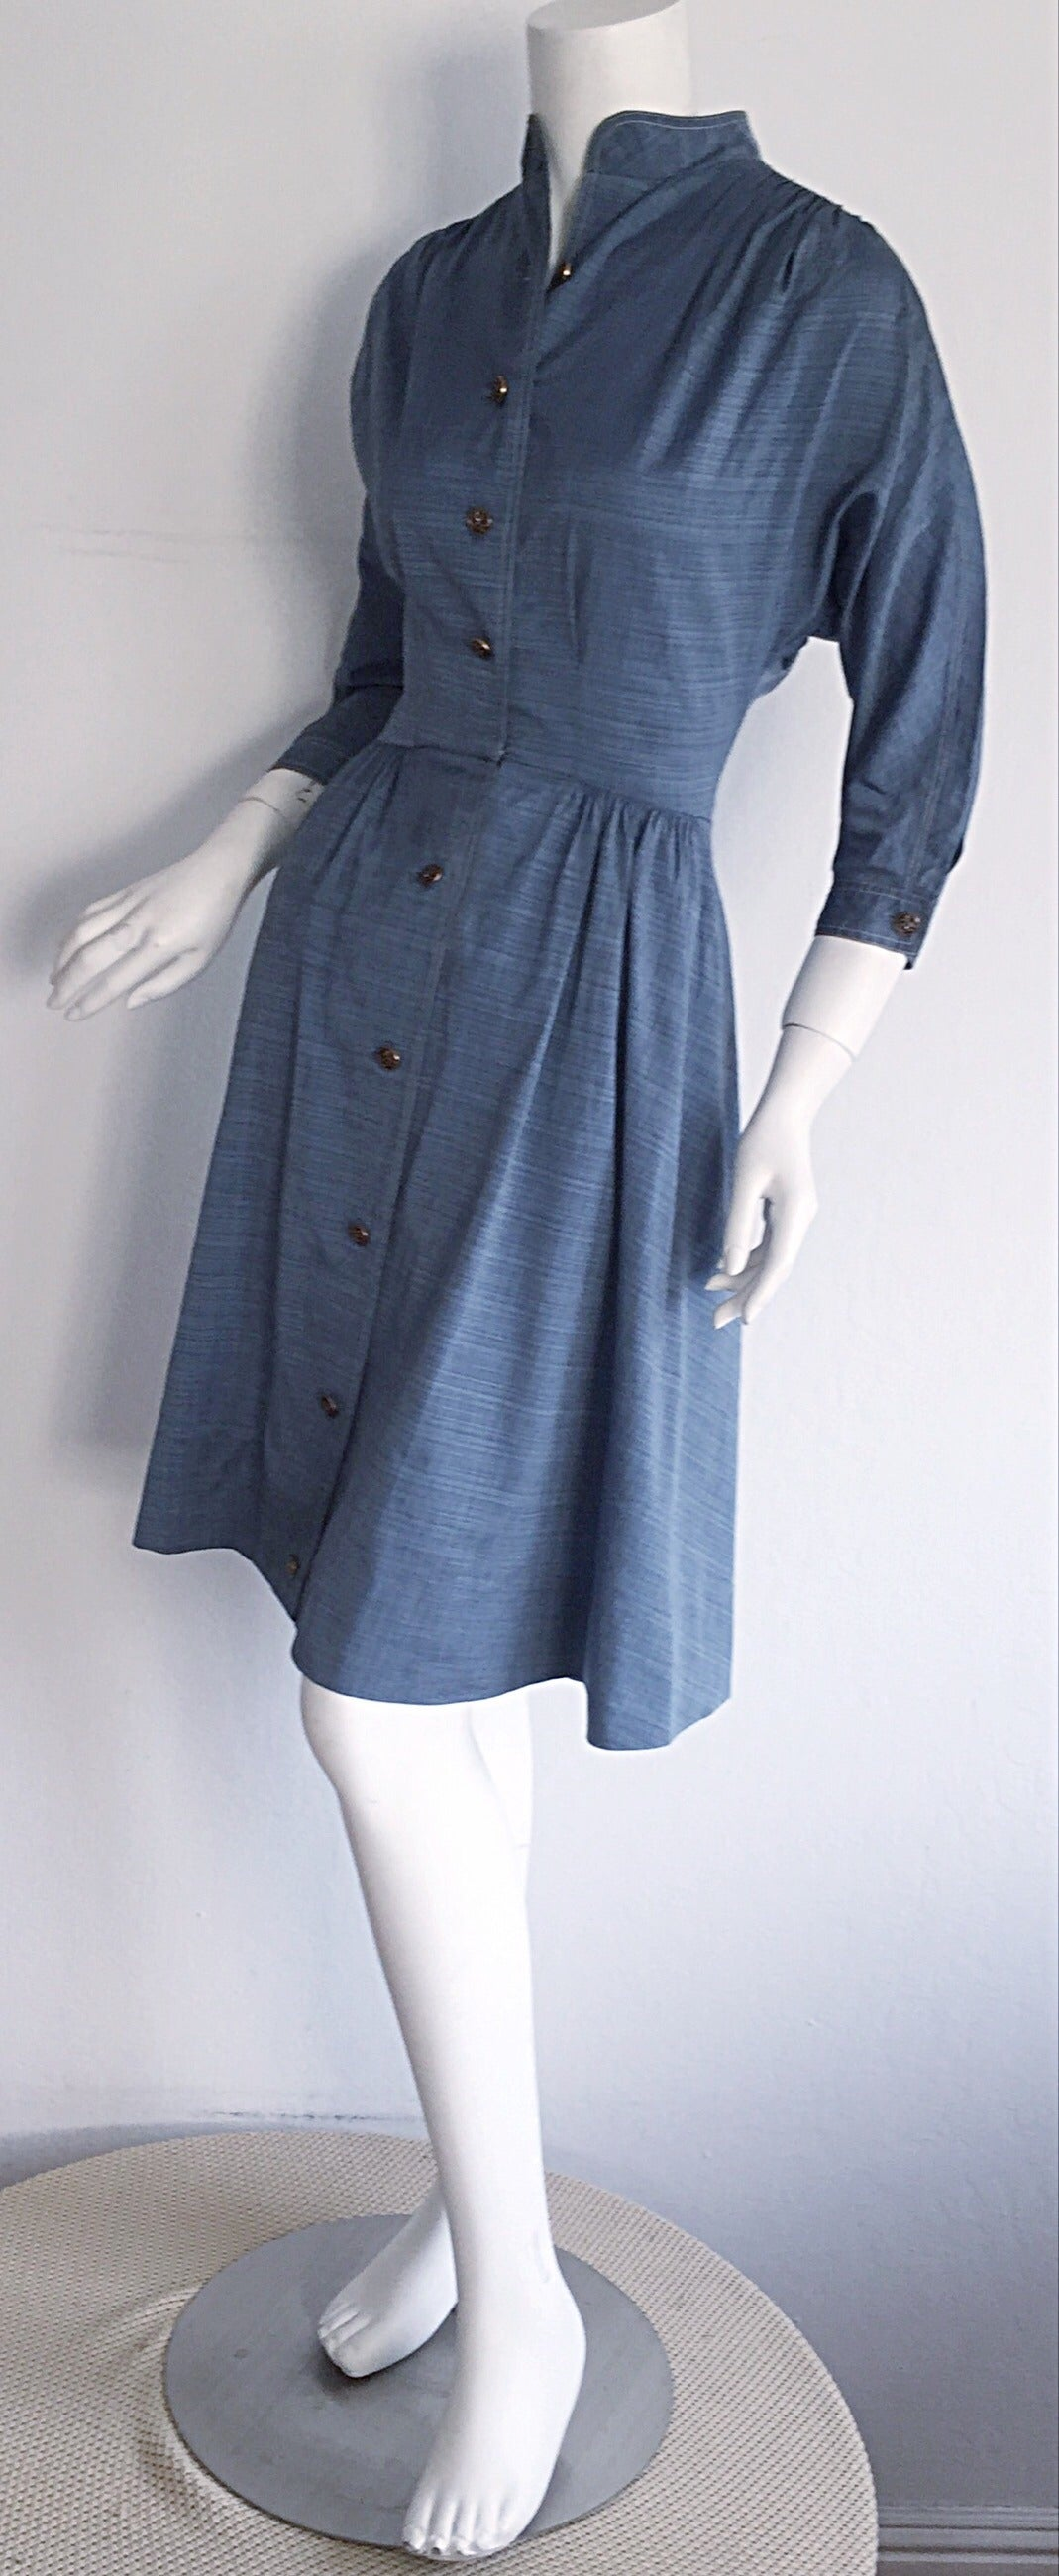 1940s Vintage B. Altman & Co. Denim Chambray Dress w/ Horse Buttons 6